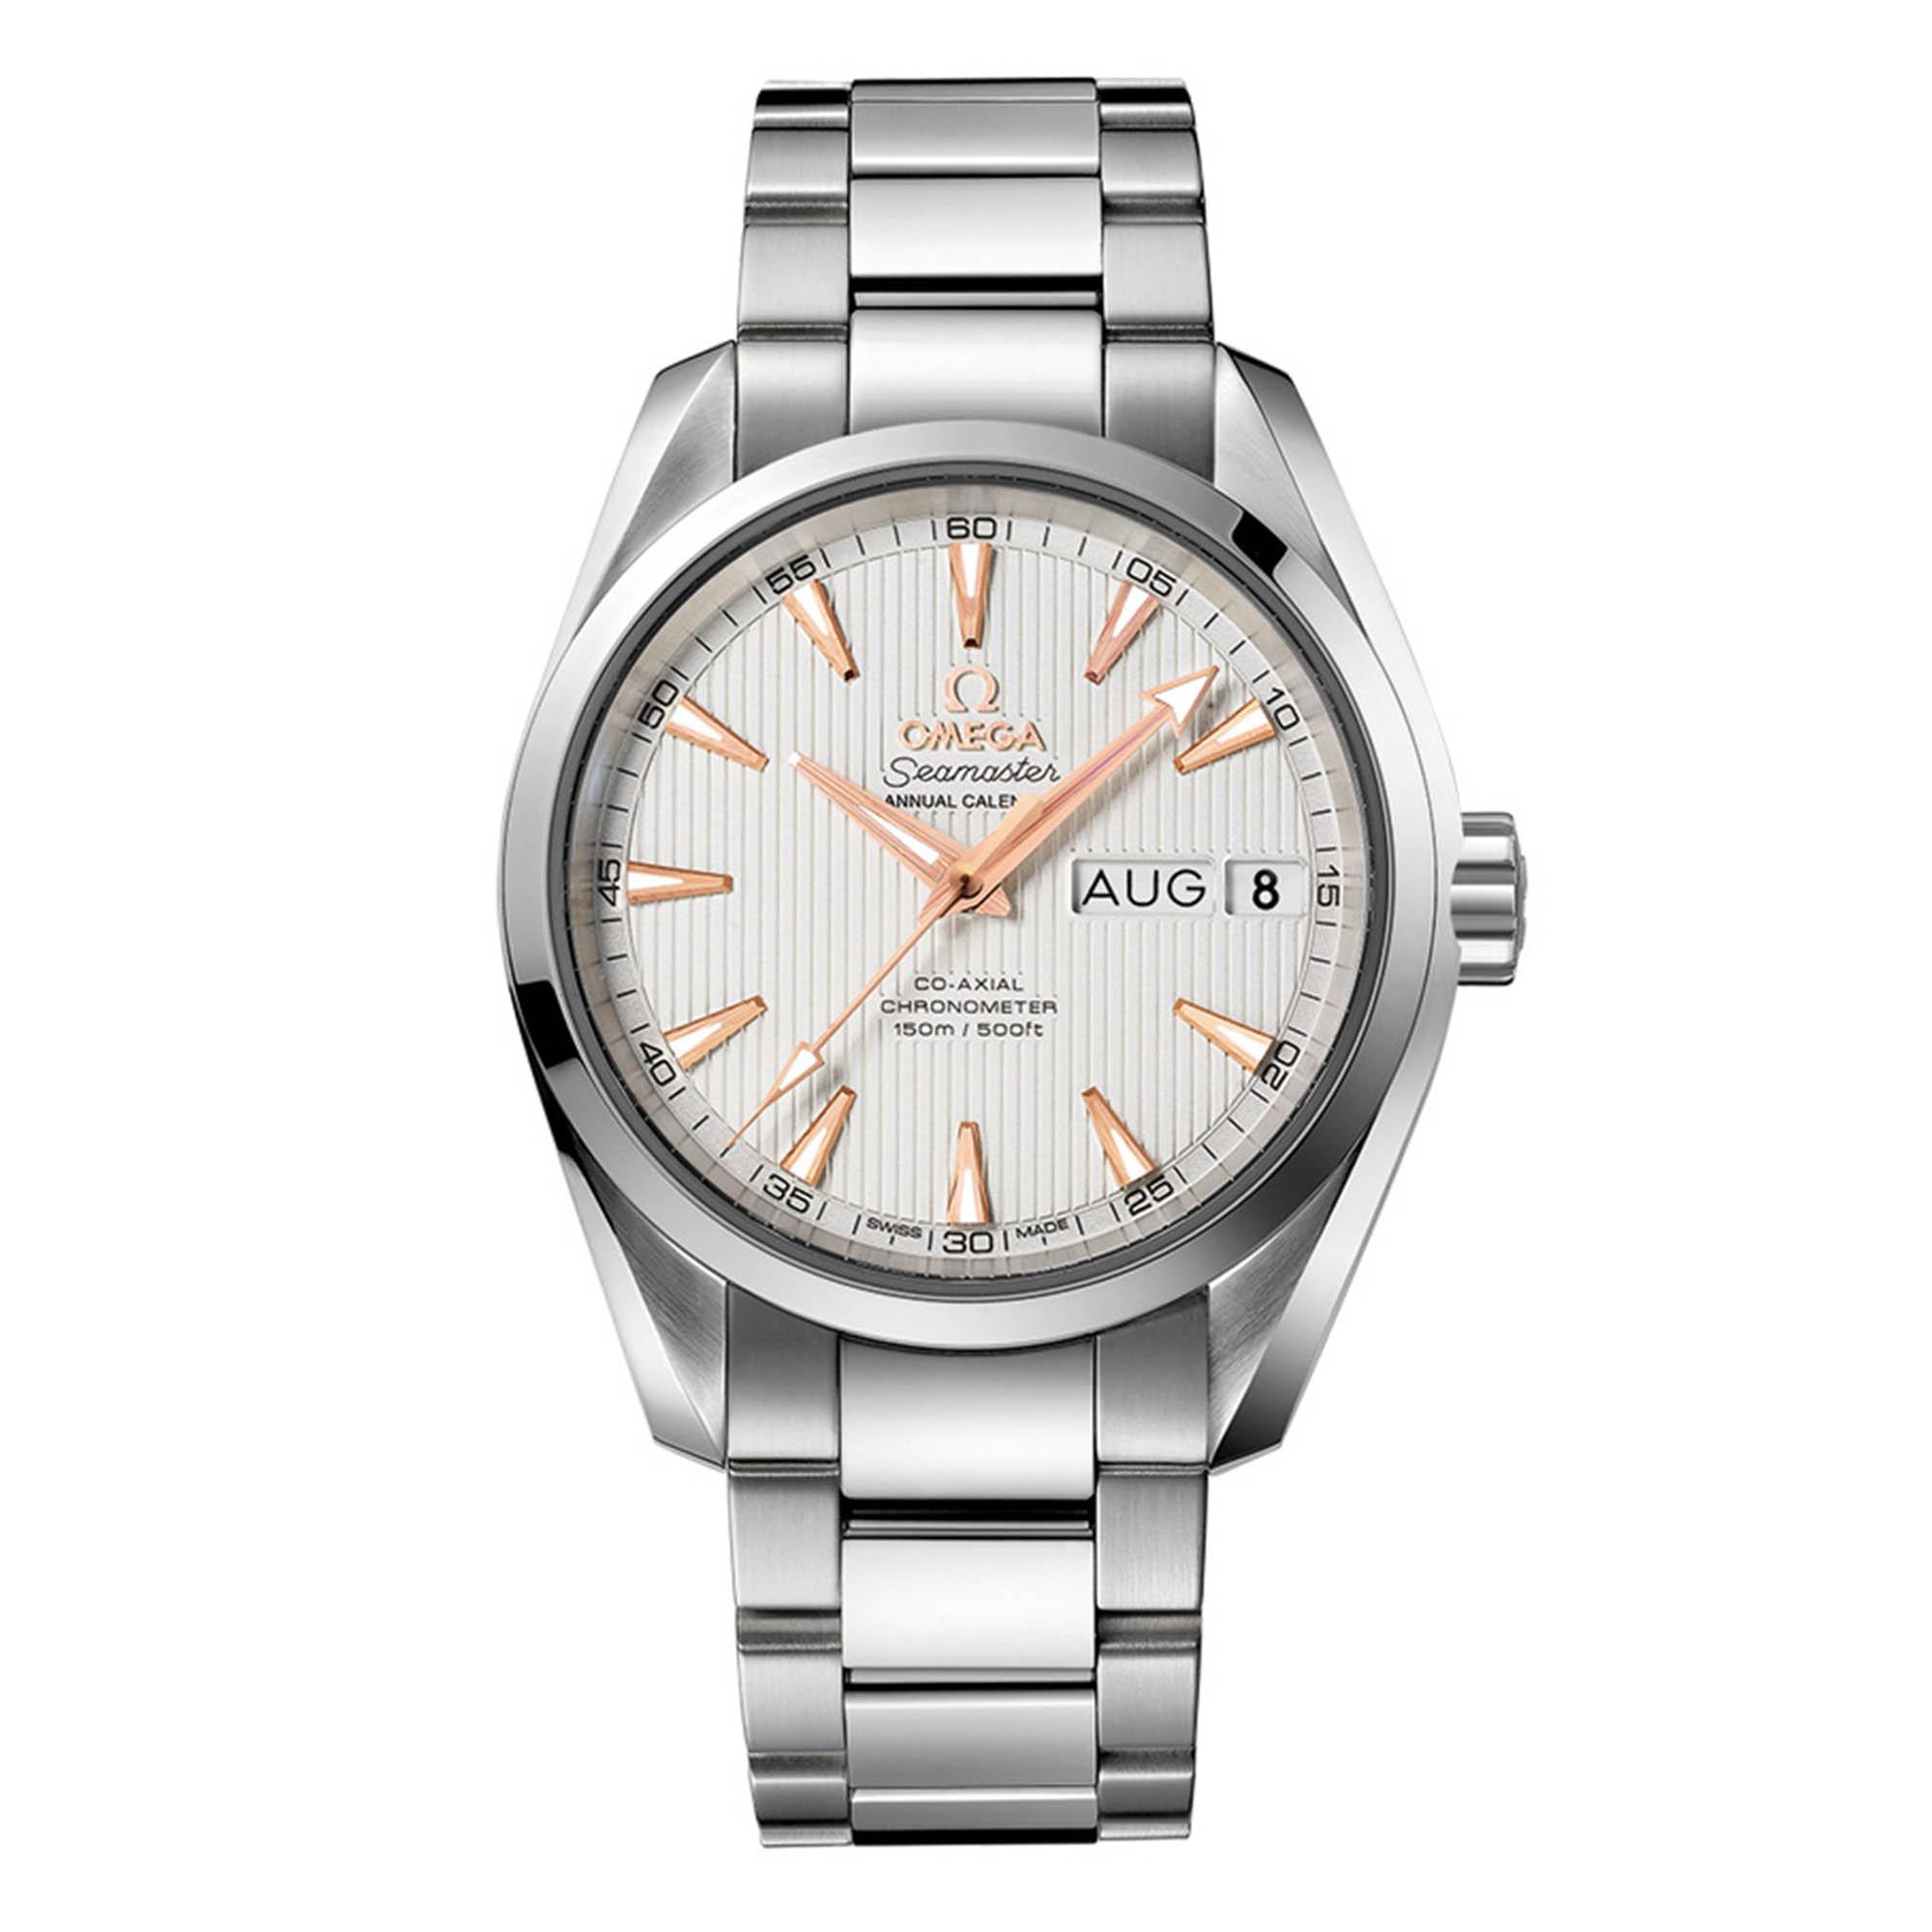 Omega - Aqua Terra 150m Co-Axial Annual Callender 38.5 MM